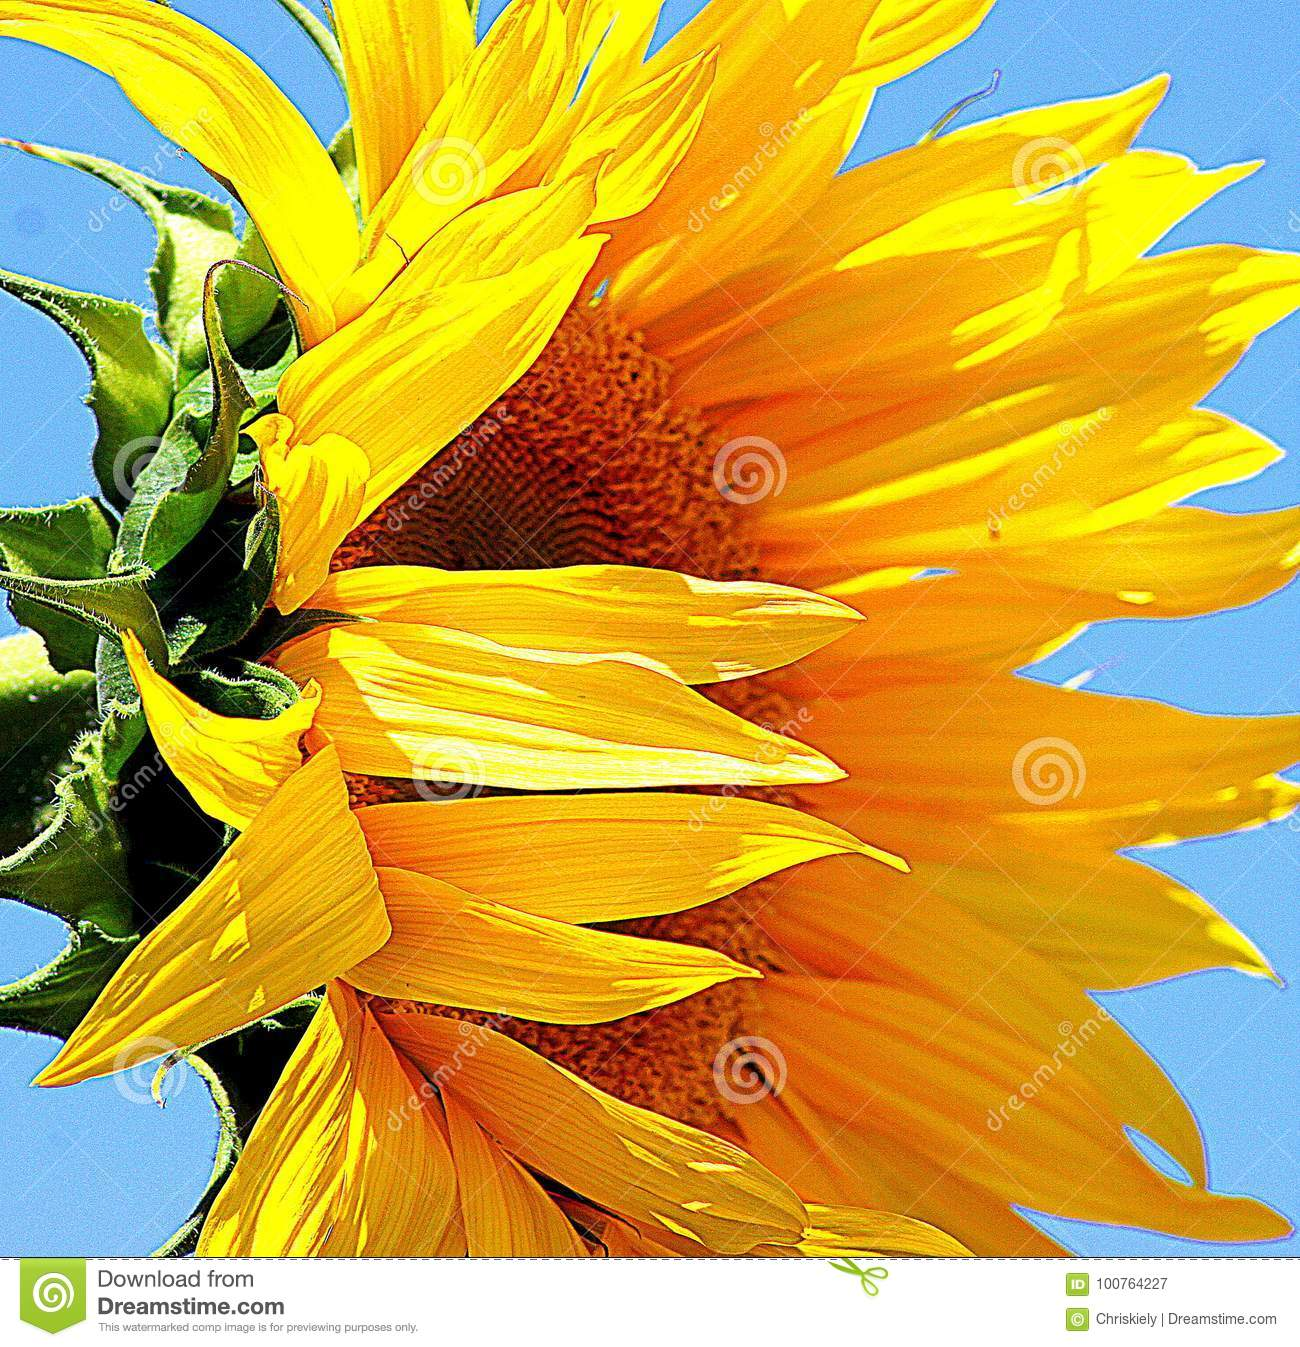 Sun Flower Stock Image Image Of Colored Height Branched 100764227